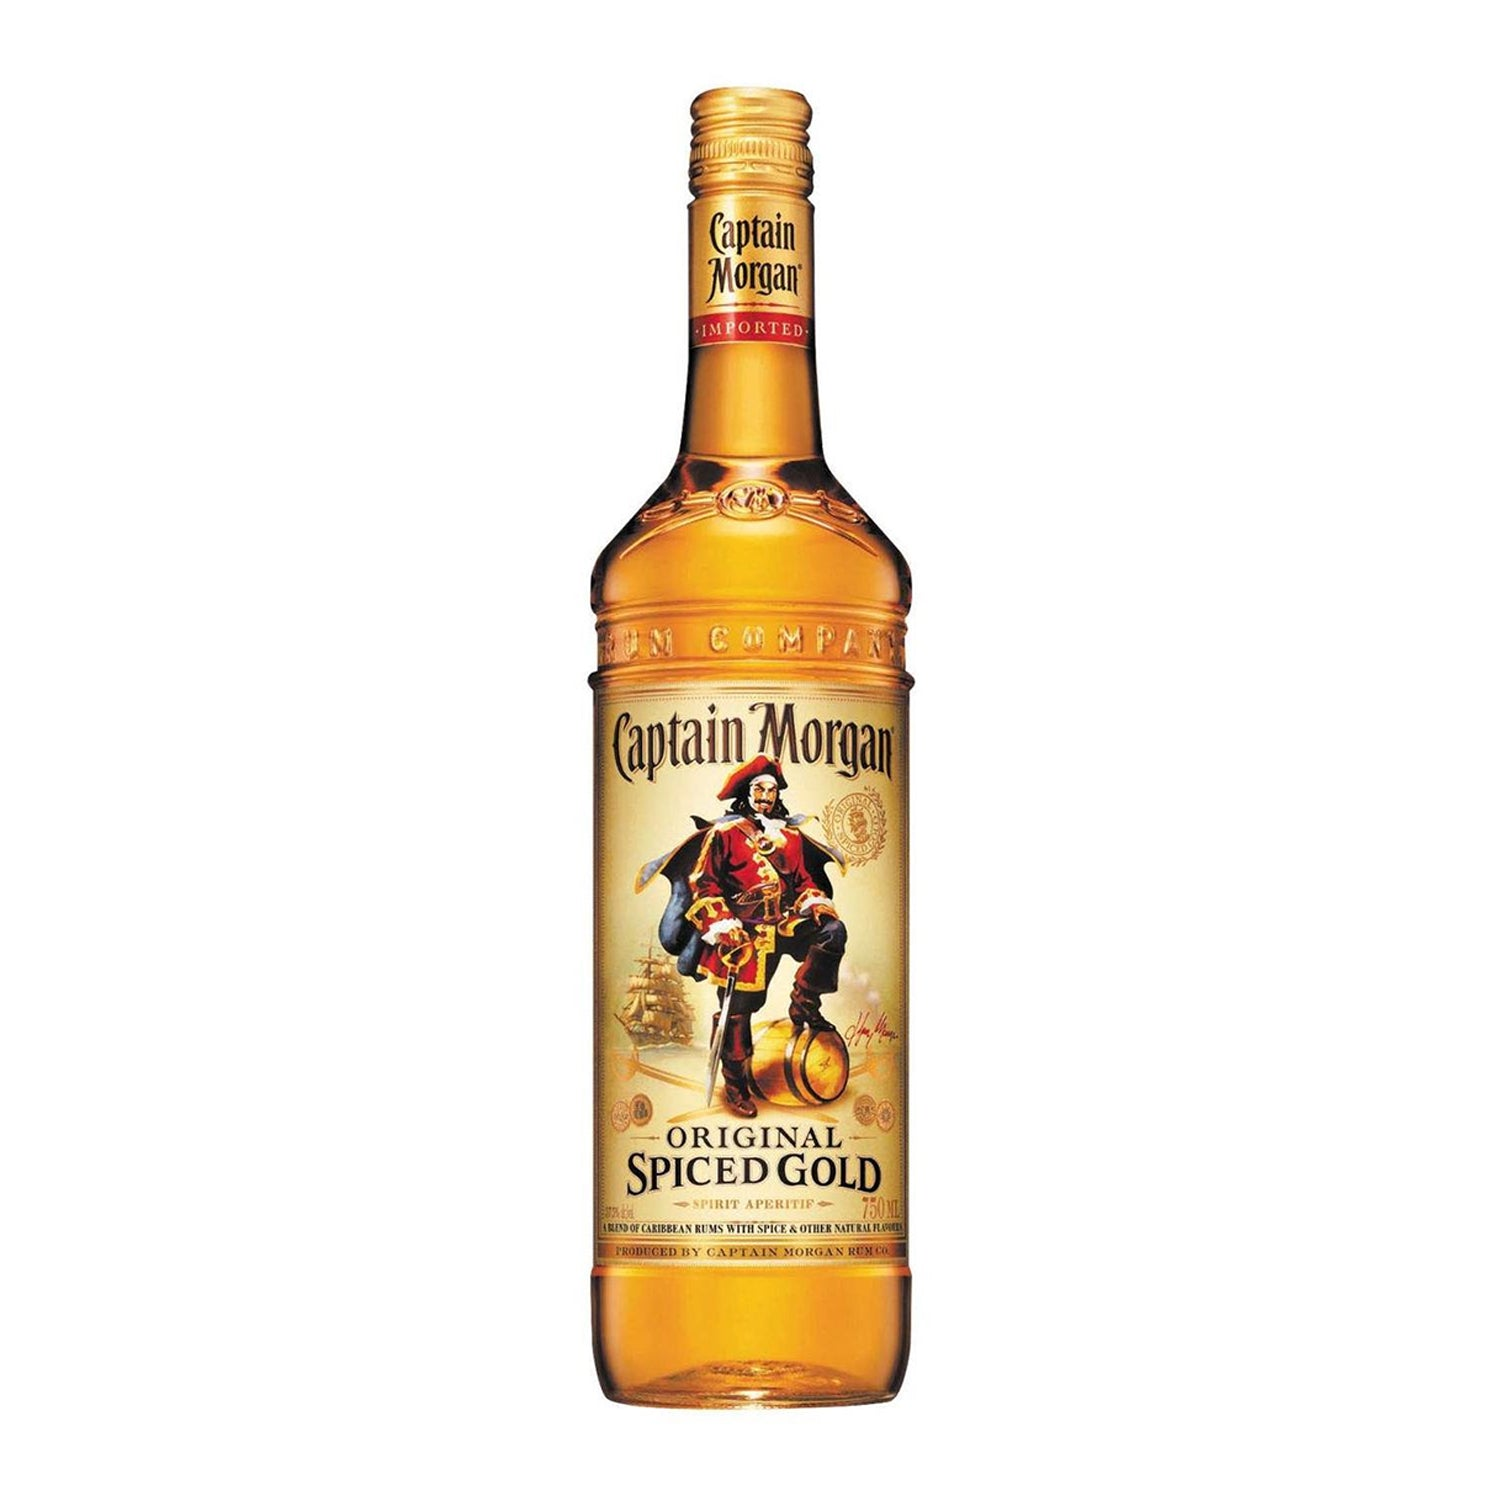 Captain Morgan Original Spiced Gold Rum [700ml]-Taste Singapore